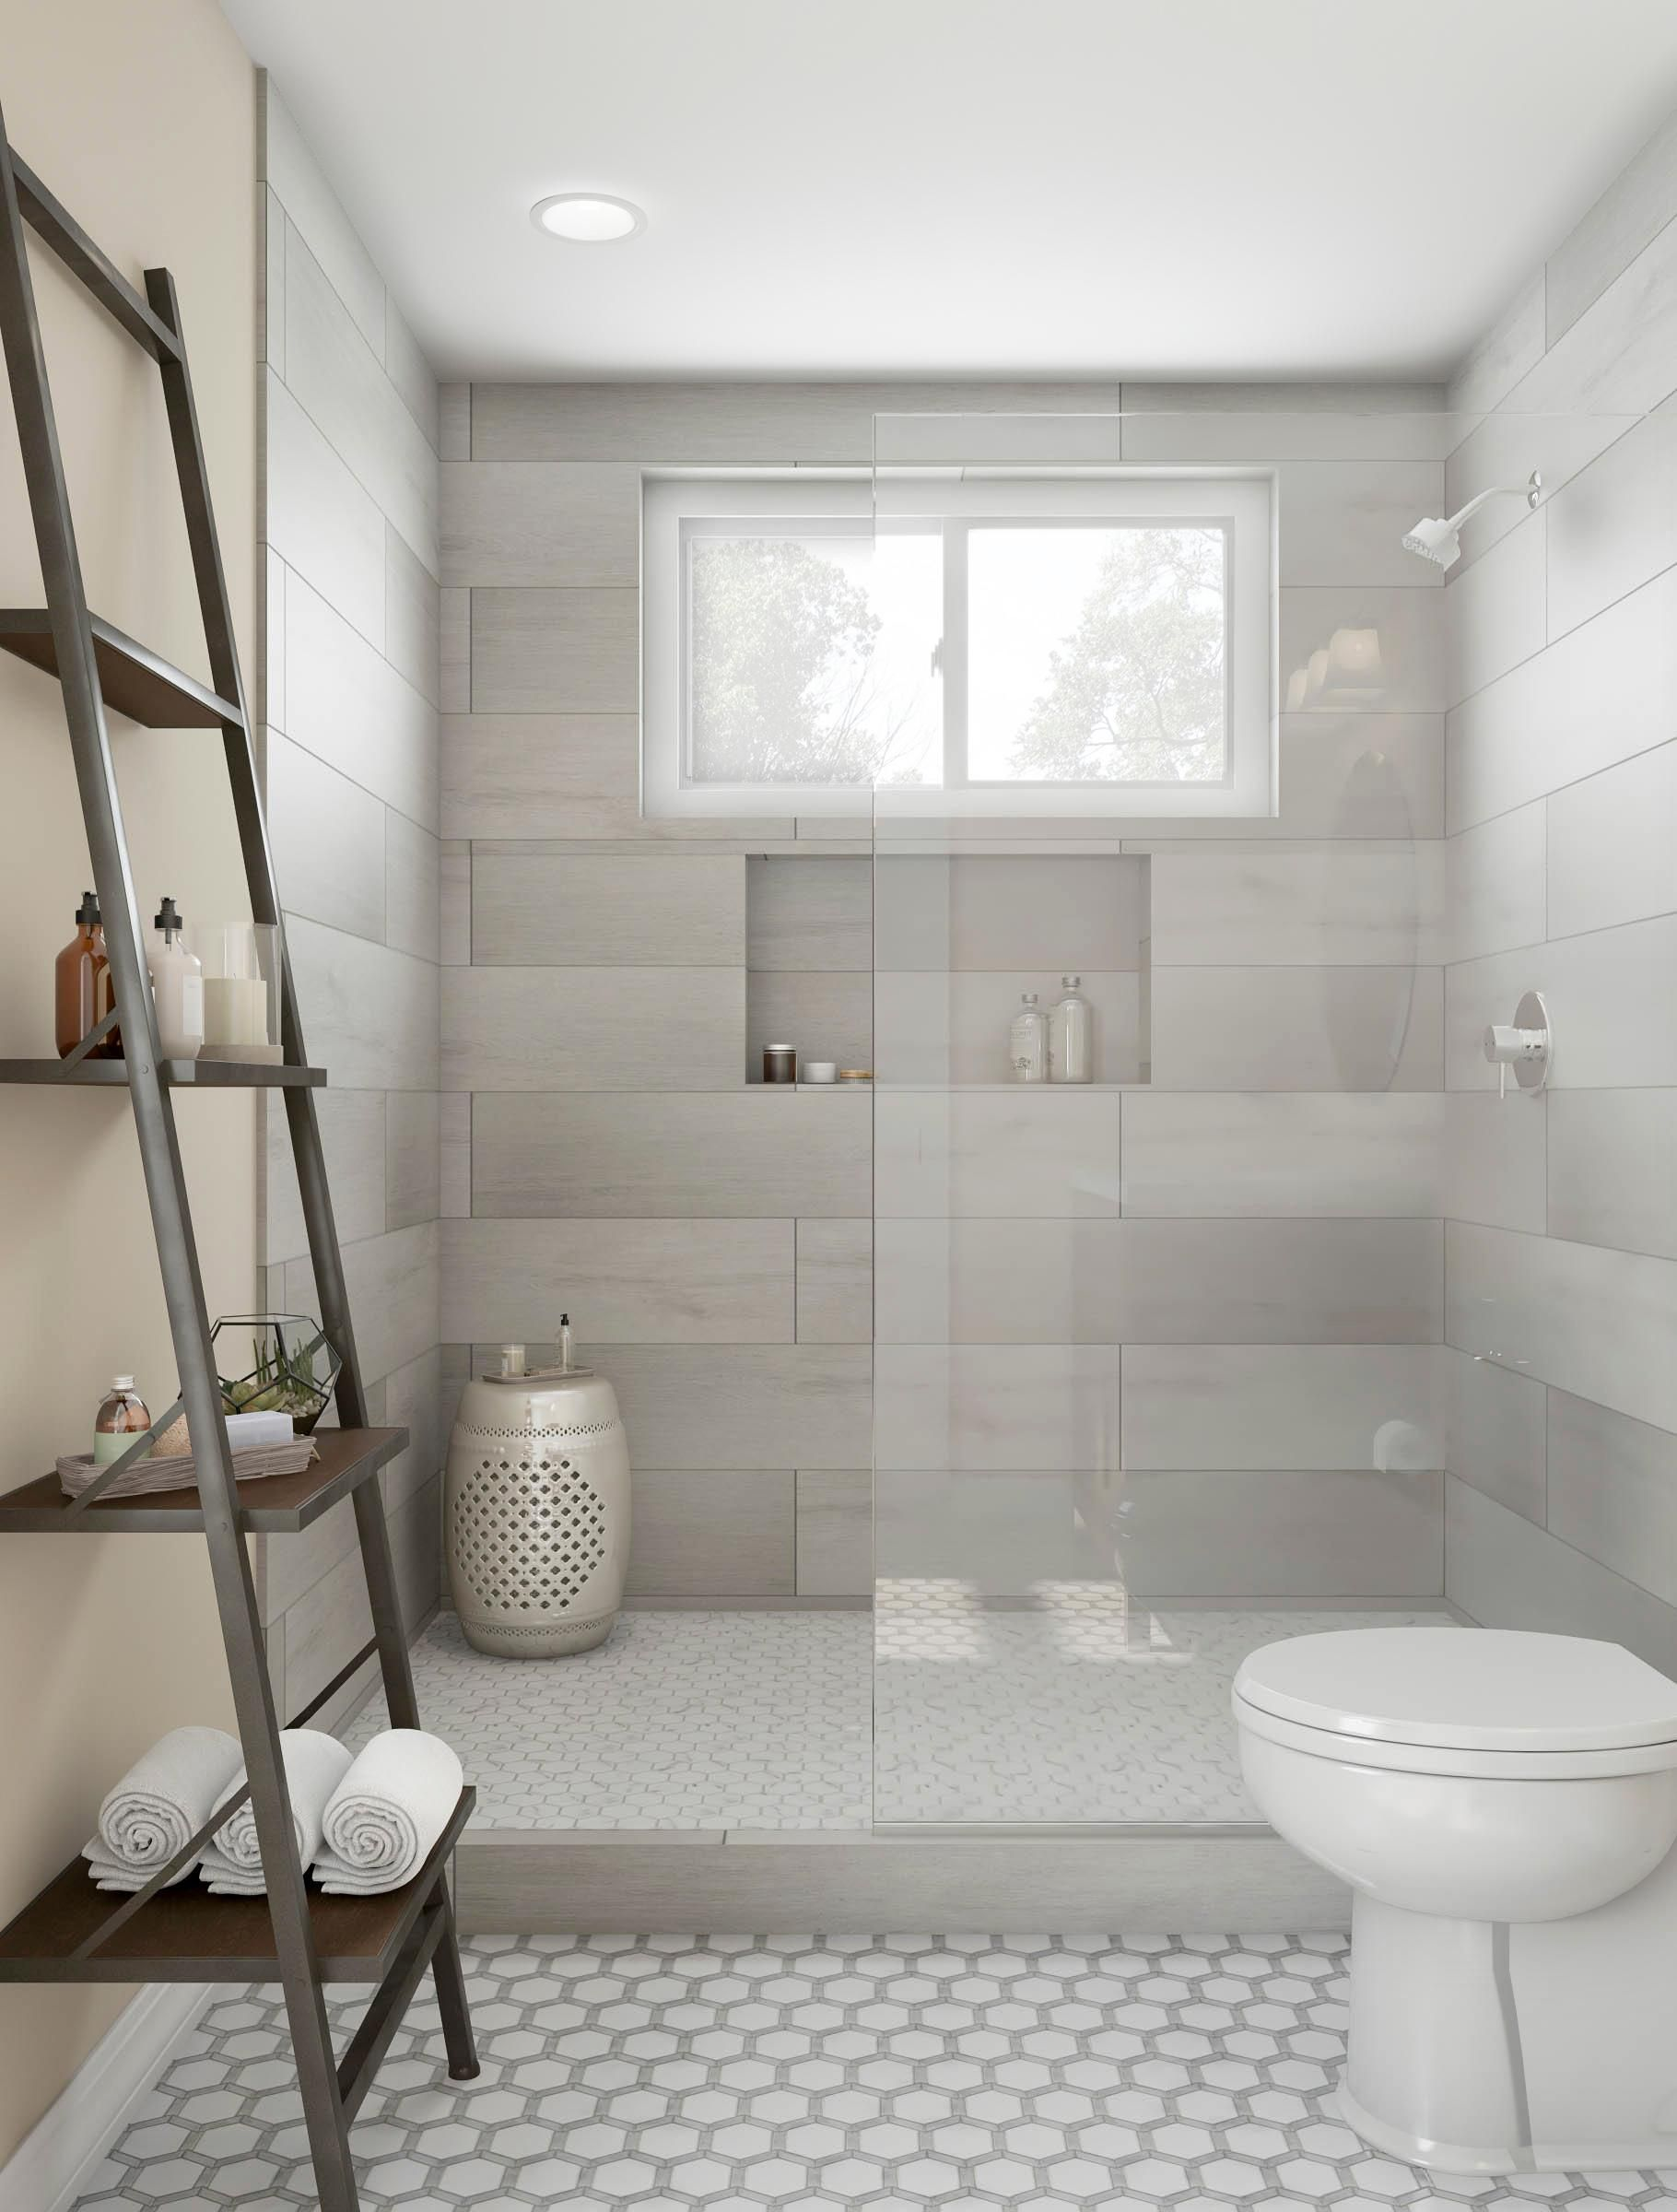 Get Inspired With Washroom Ceramic Tile Styles Patterns Currently Sight Our Photo Gallery To Master Bathroom Shower Bathroom Remodel Shower Bathrooms Remodel